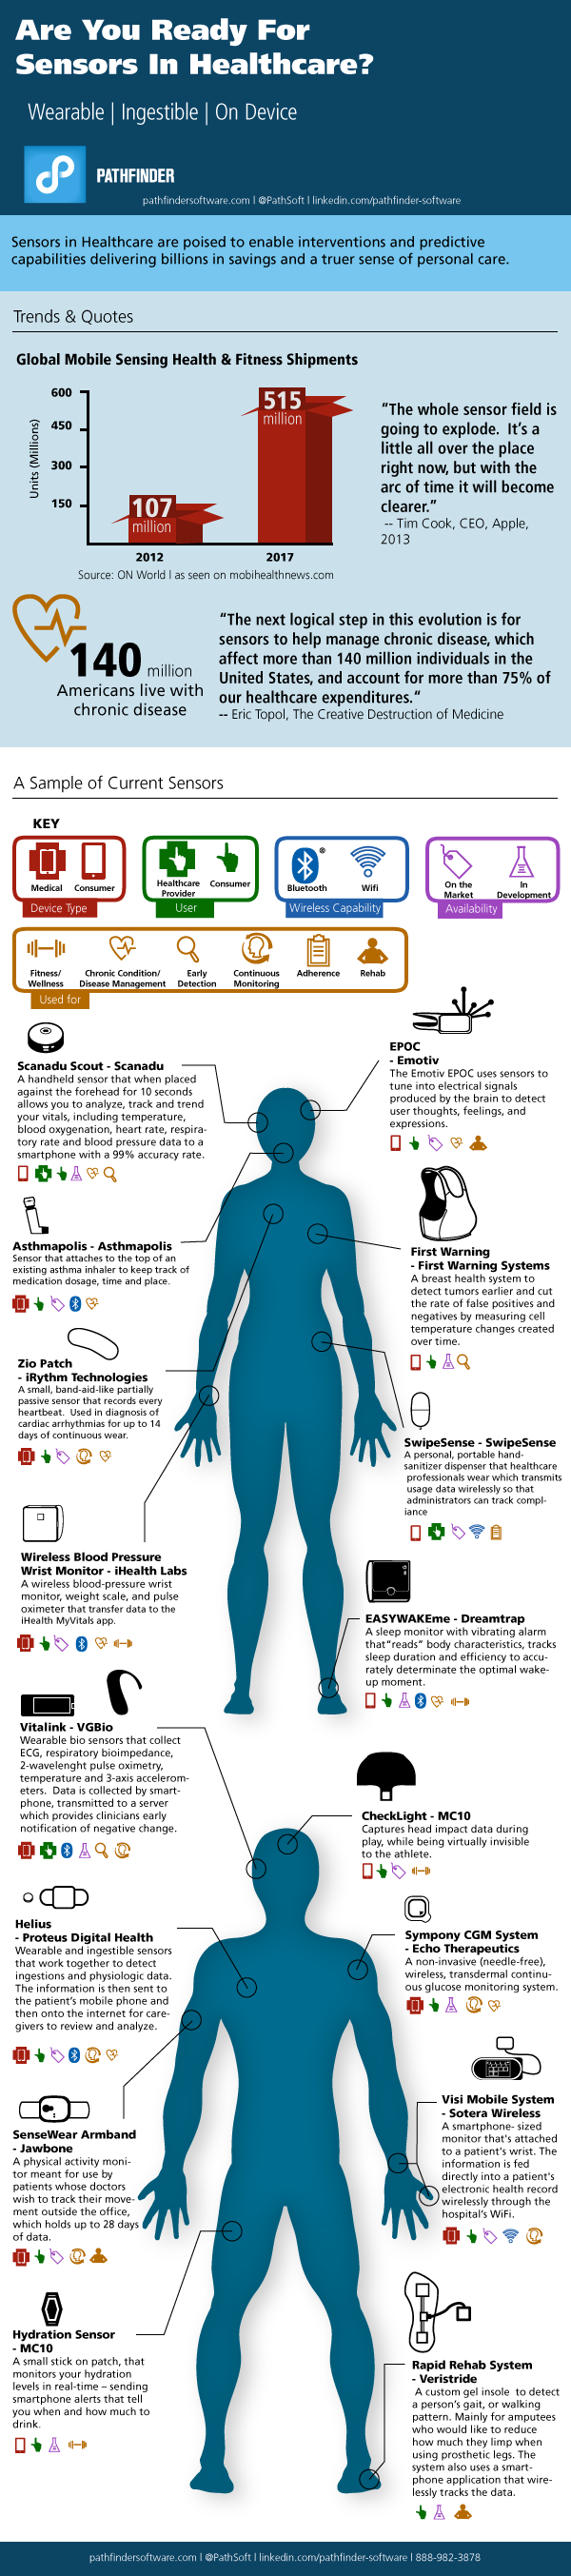 The-Growing-Impact-of-Sensors-in-Healthcare-Transformation-Infographic